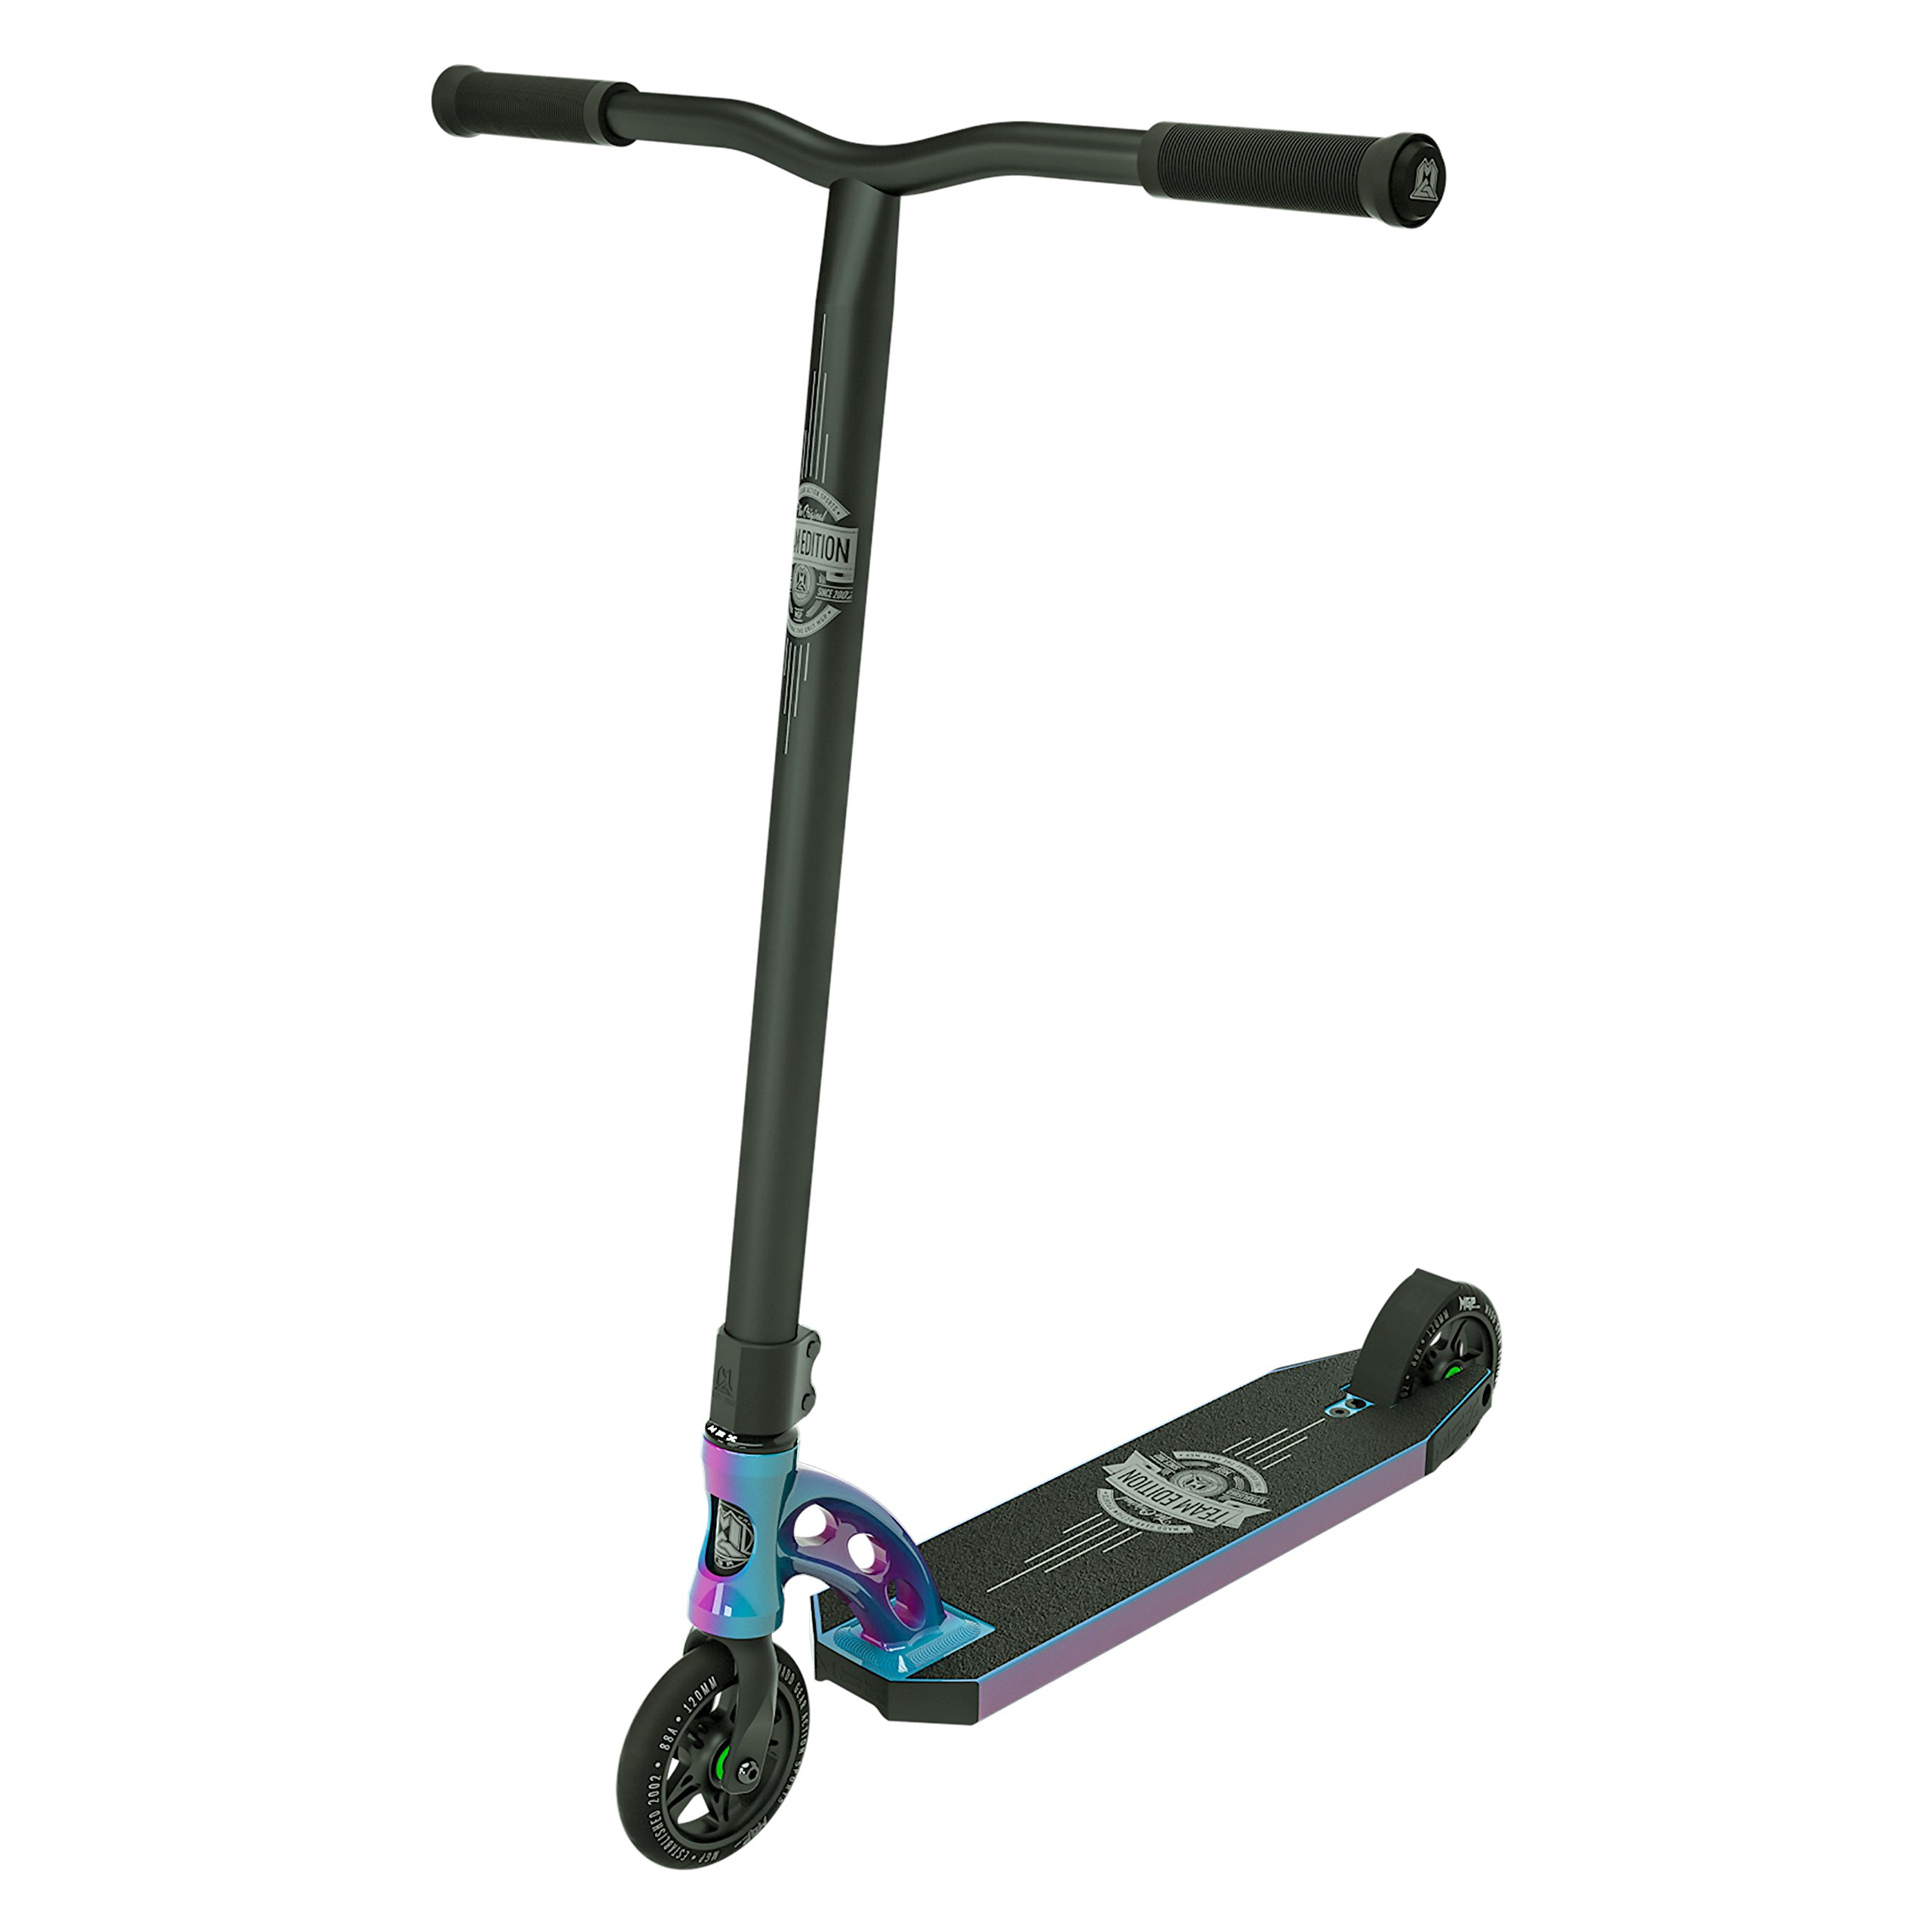 Madd Gear VX8 Team Pro Scooter